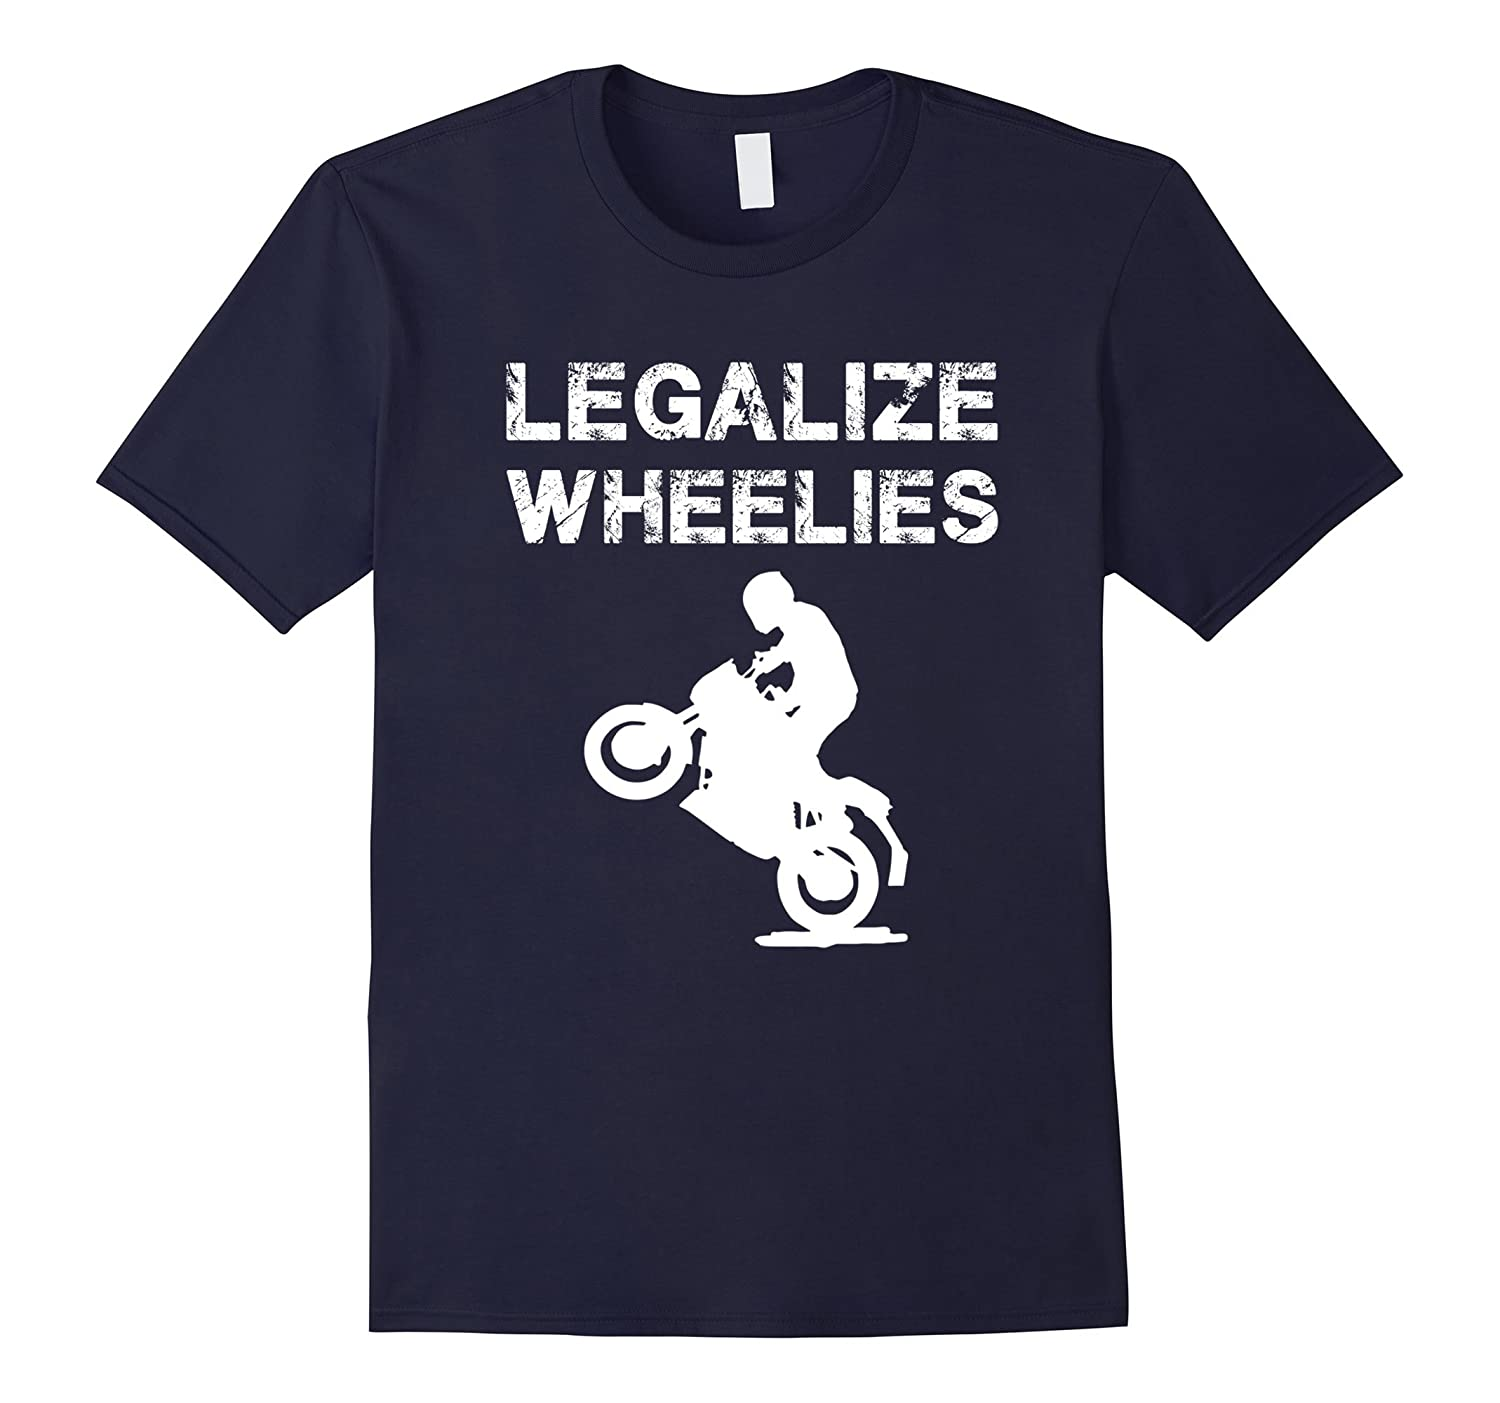 Legalize Wheelies T Shirt - Motorcycling and bikers shirt-CD